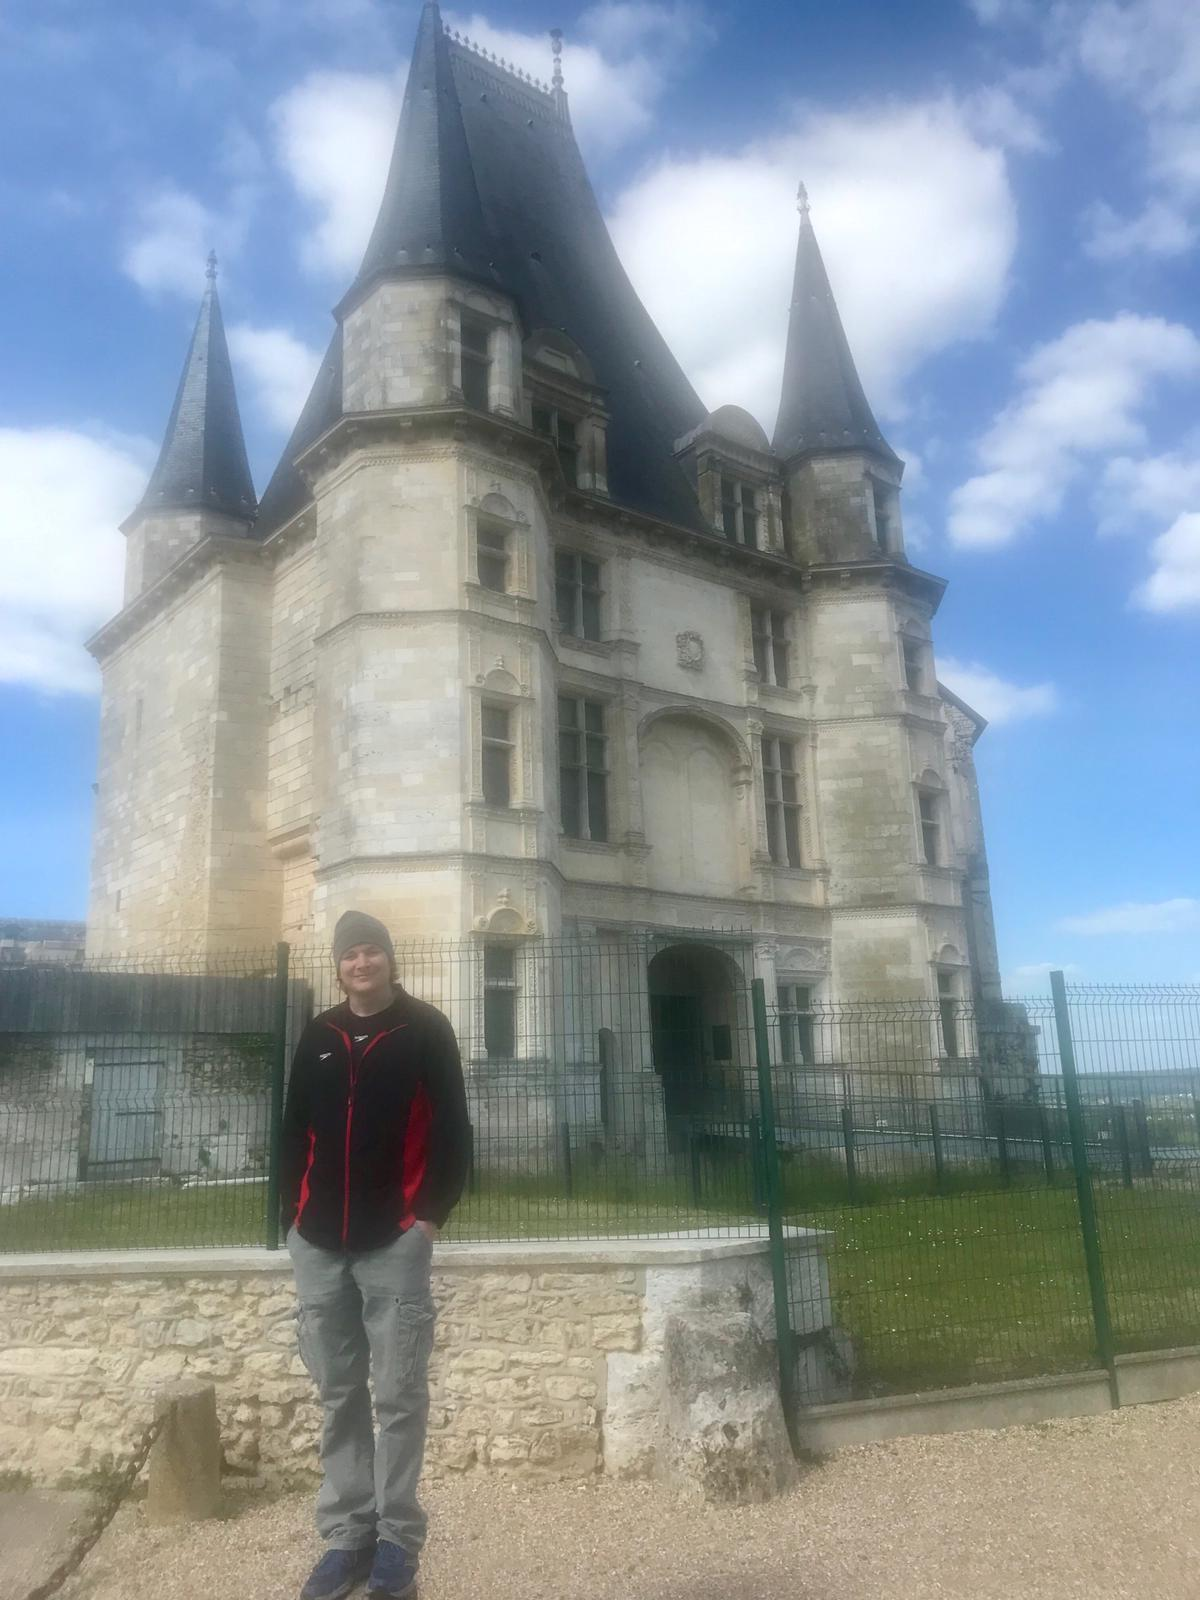 David in front of a castle he would like to purchase